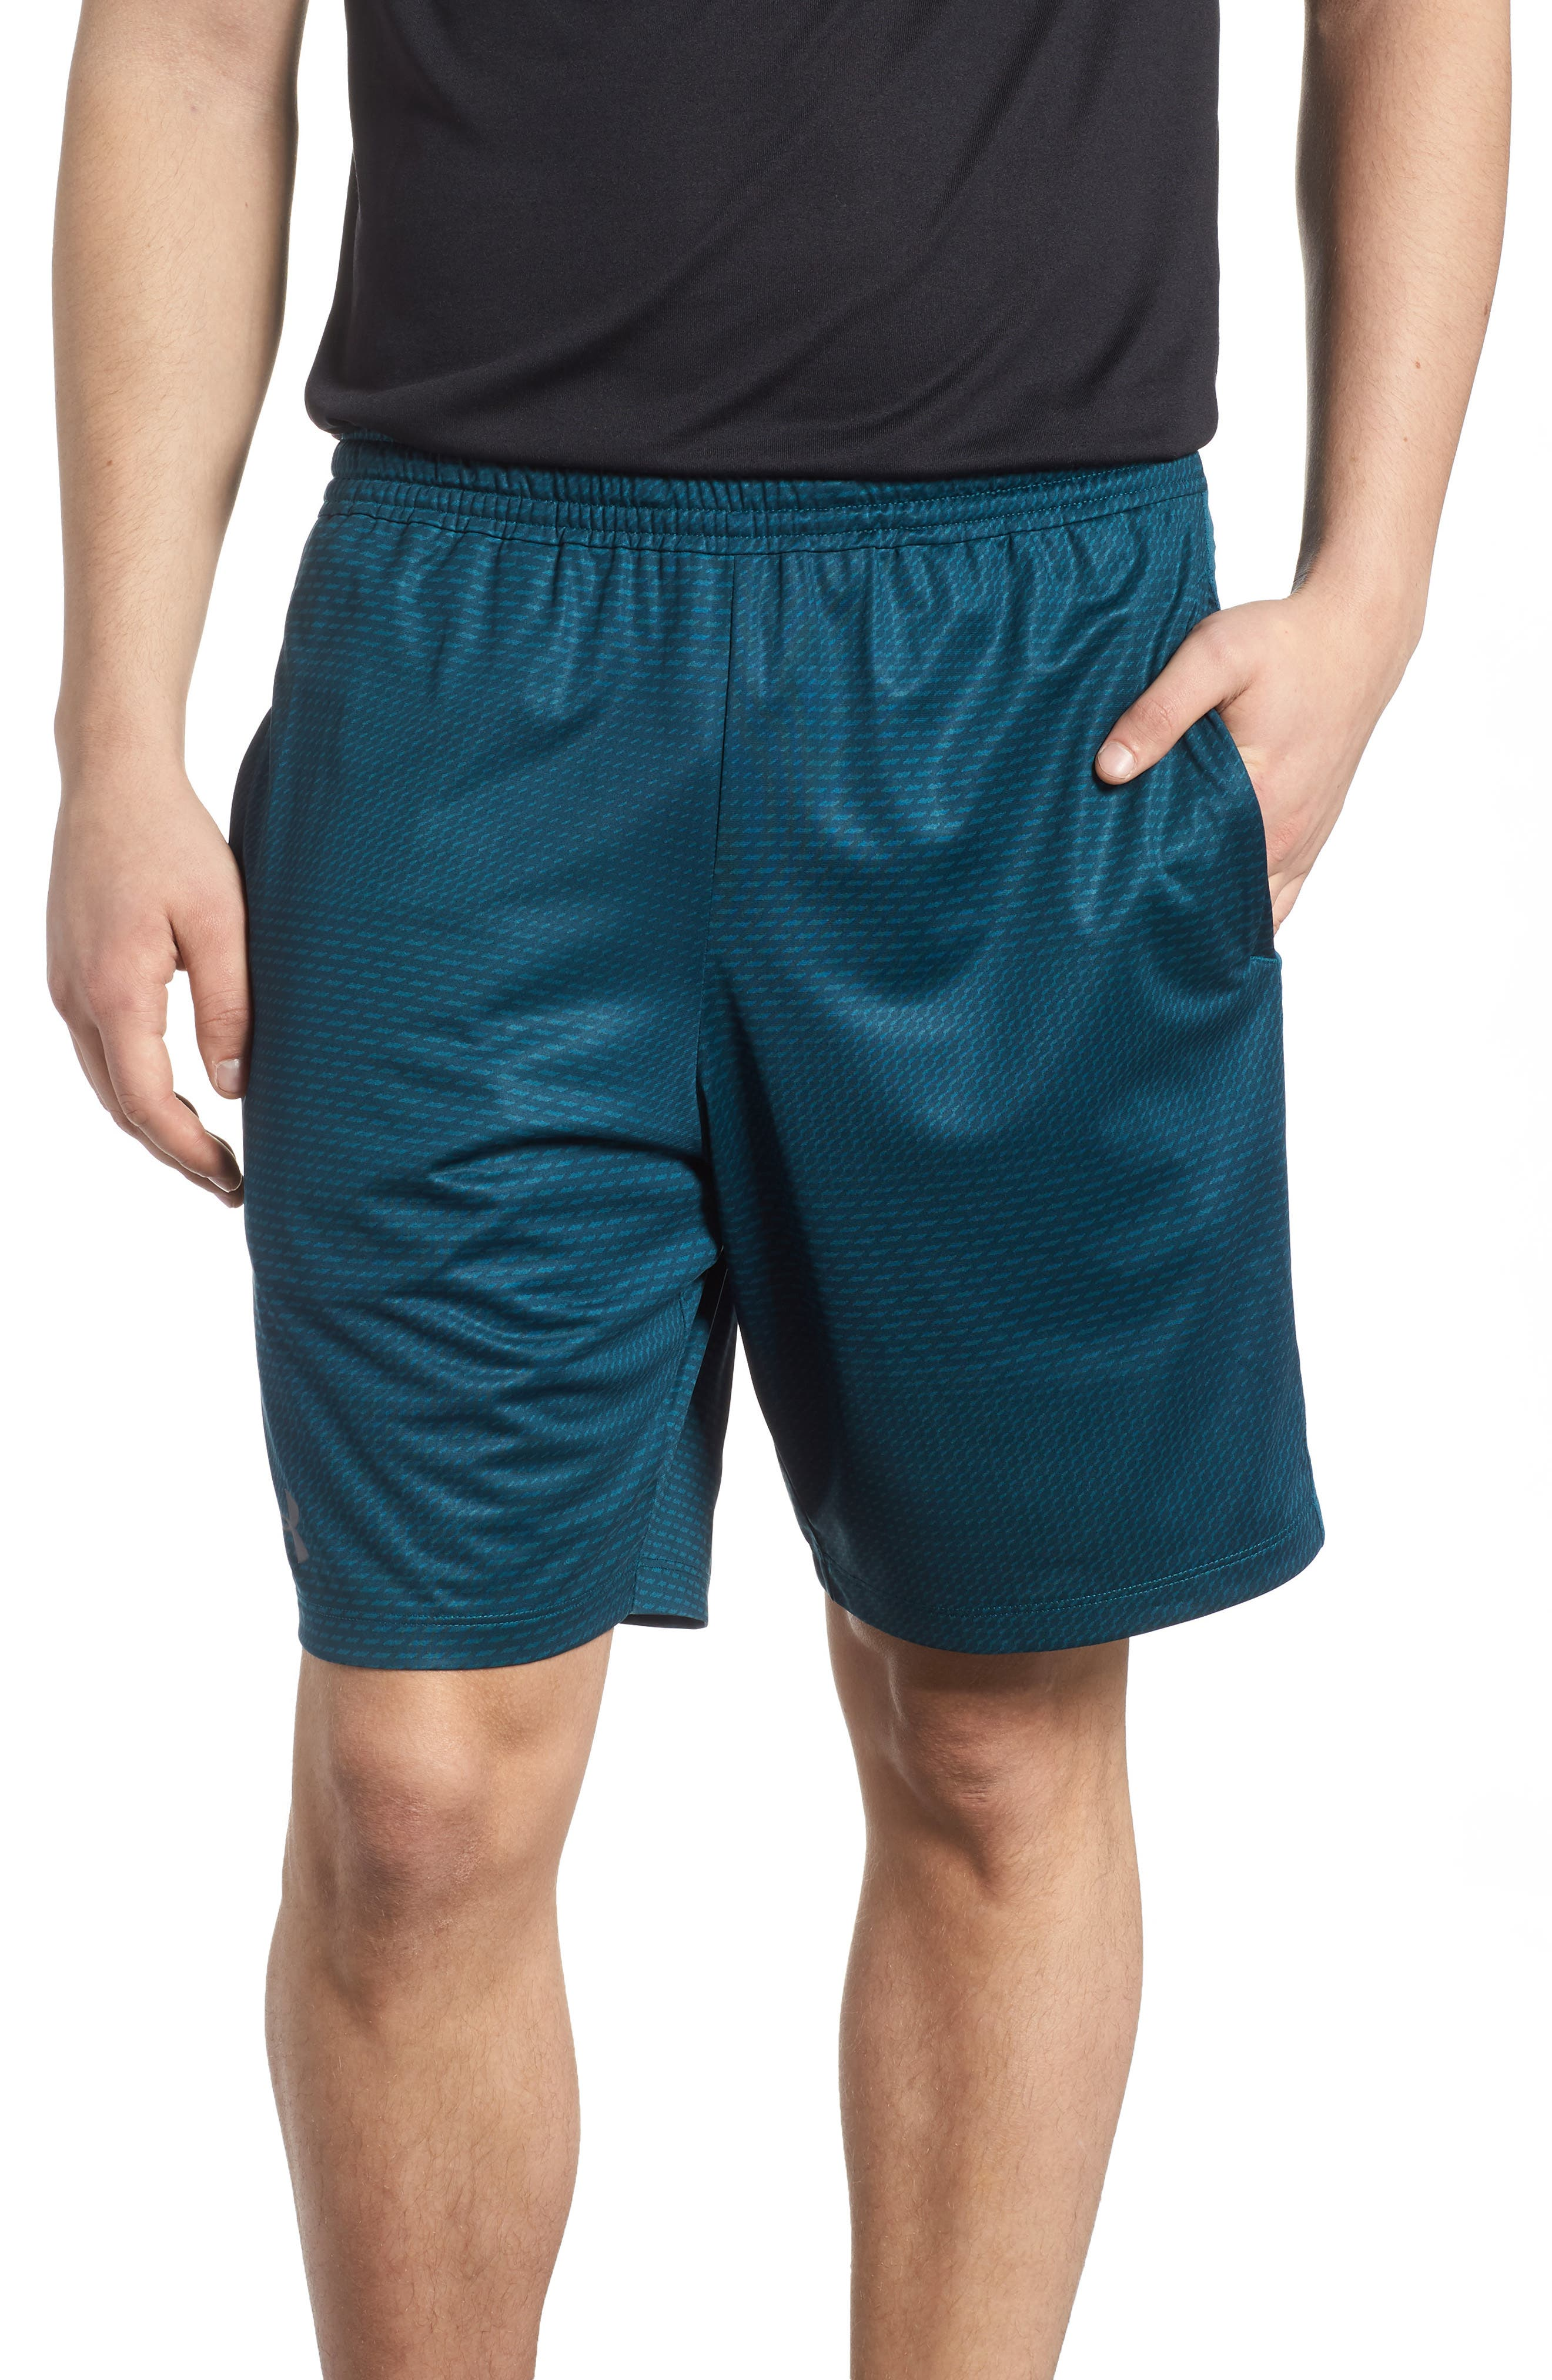 Raid 2.0 Classic Fit Shorts,                         Main,                         color, Tourmaline Teal/ Stealth Gray